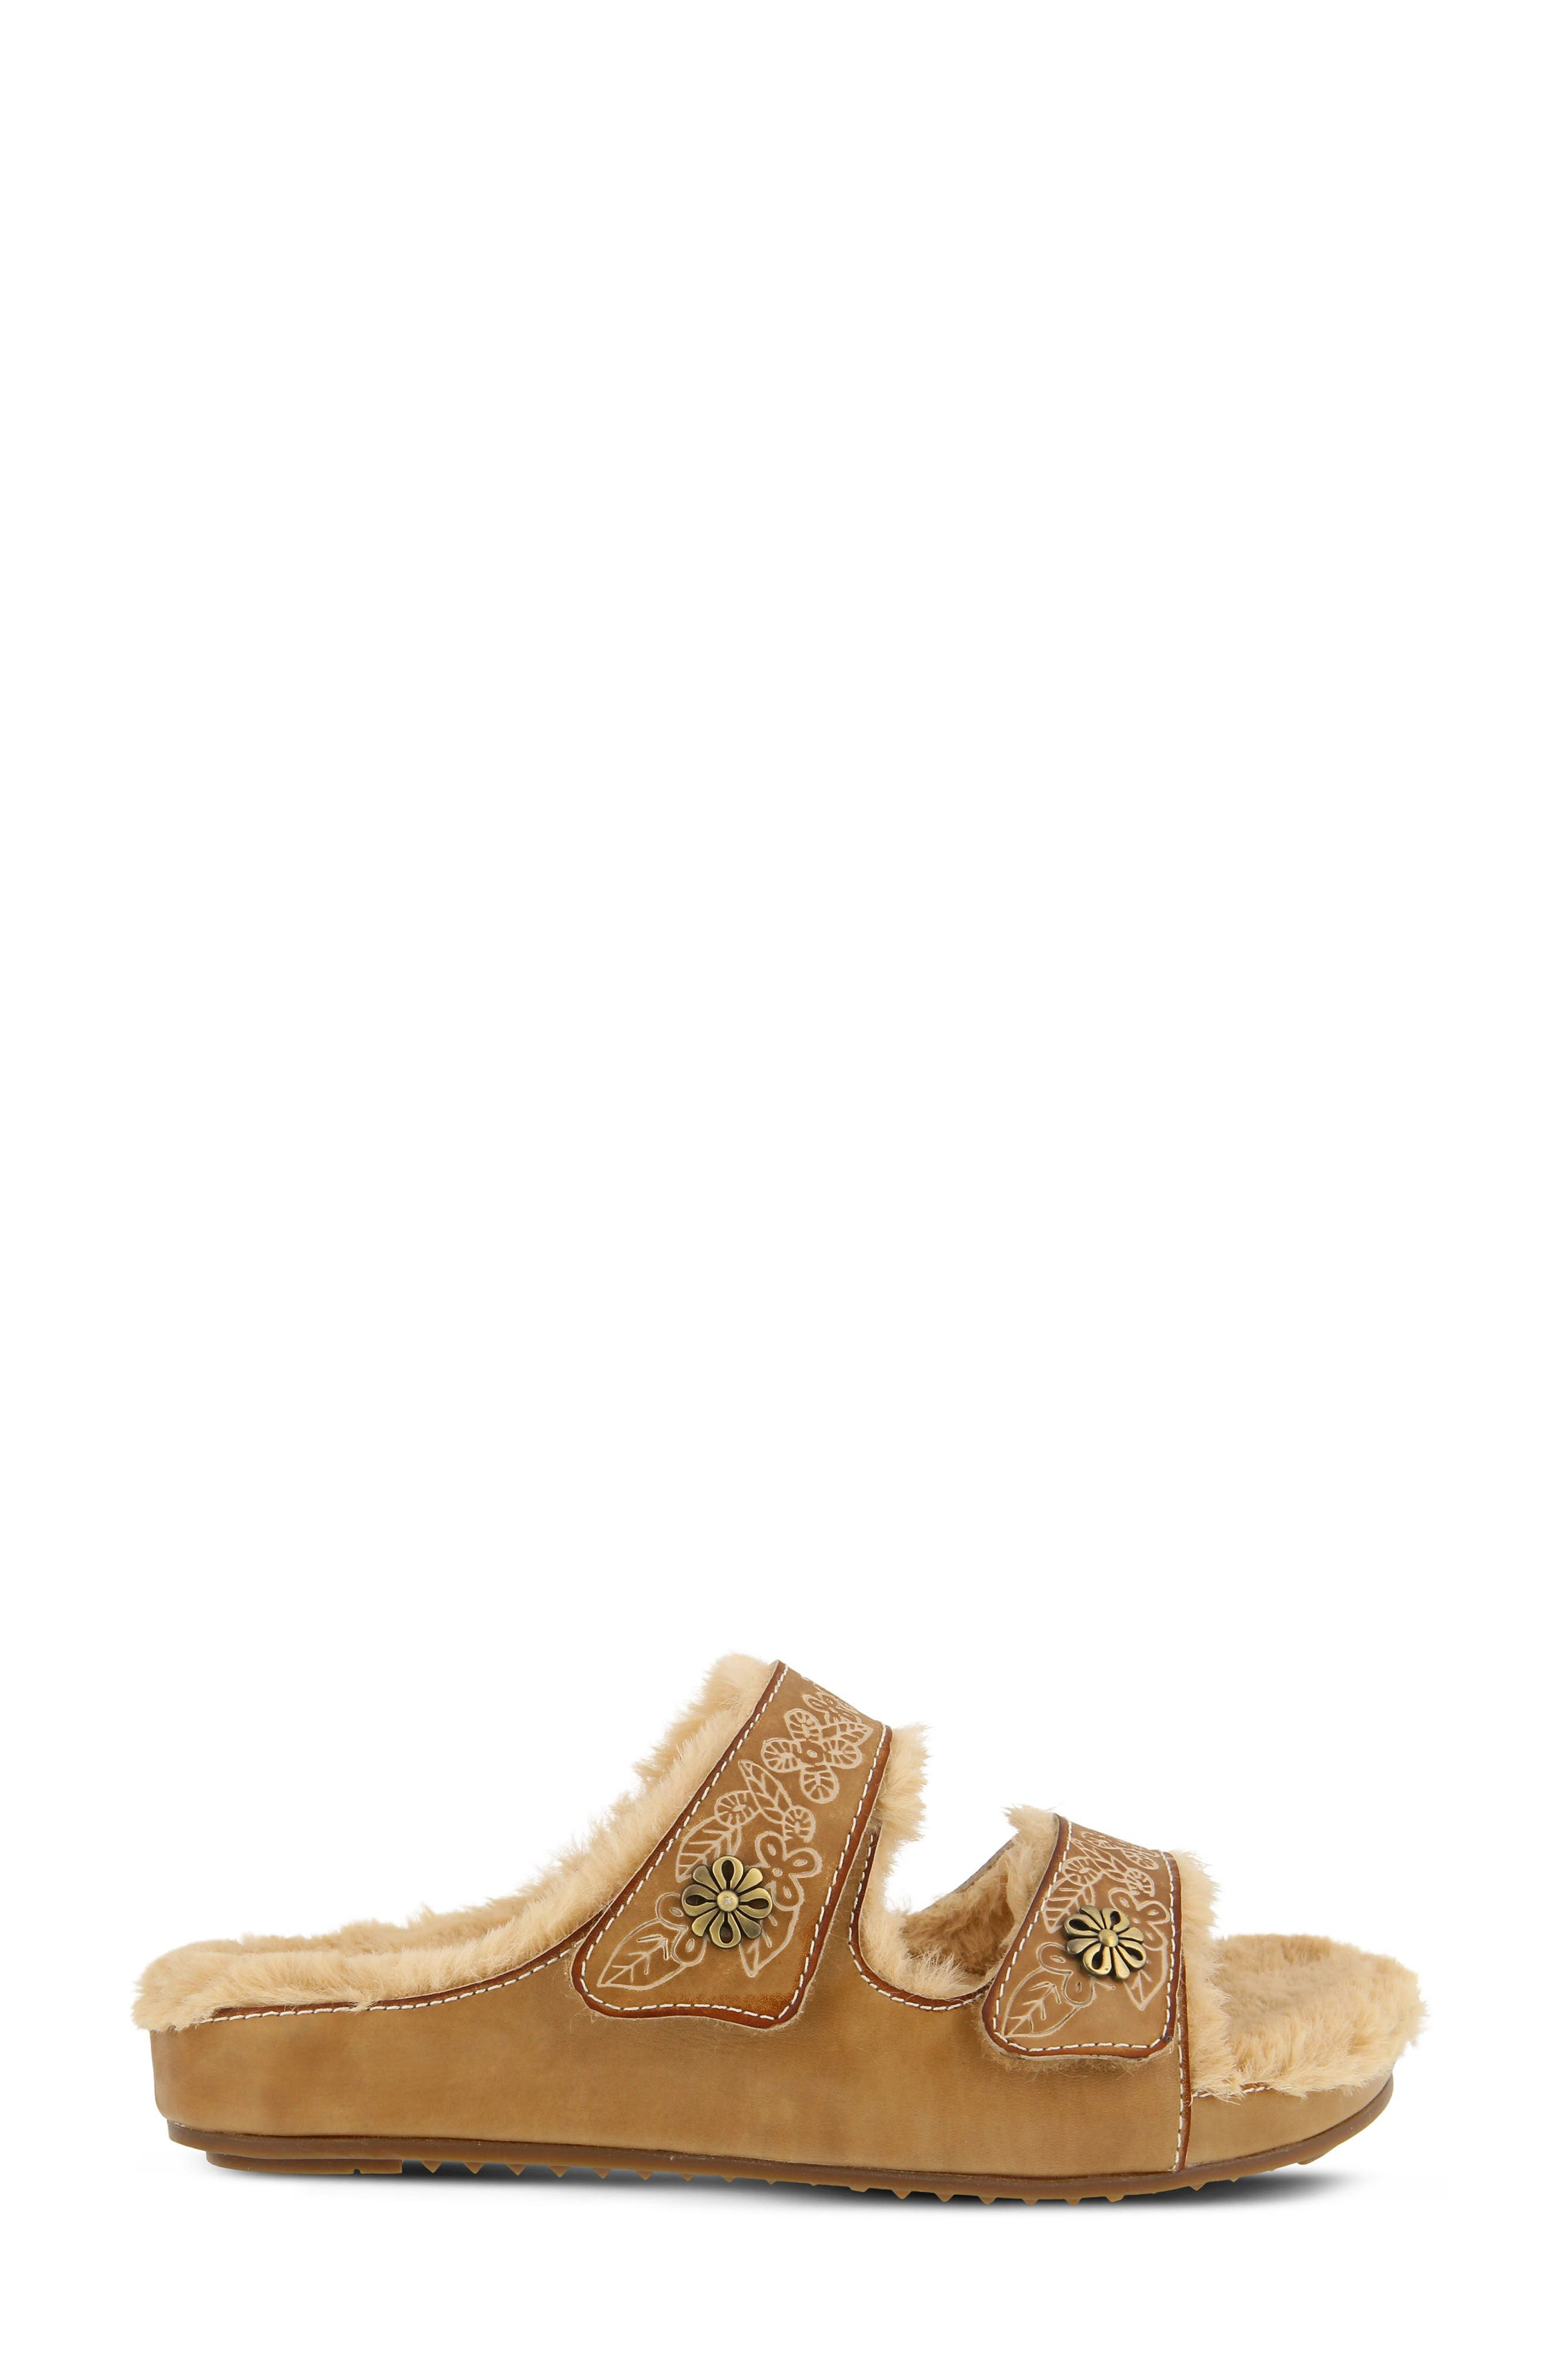 L'Artiste Furrie Sandal,                             Alternate thumbnail 3, color,                             Beige Leather